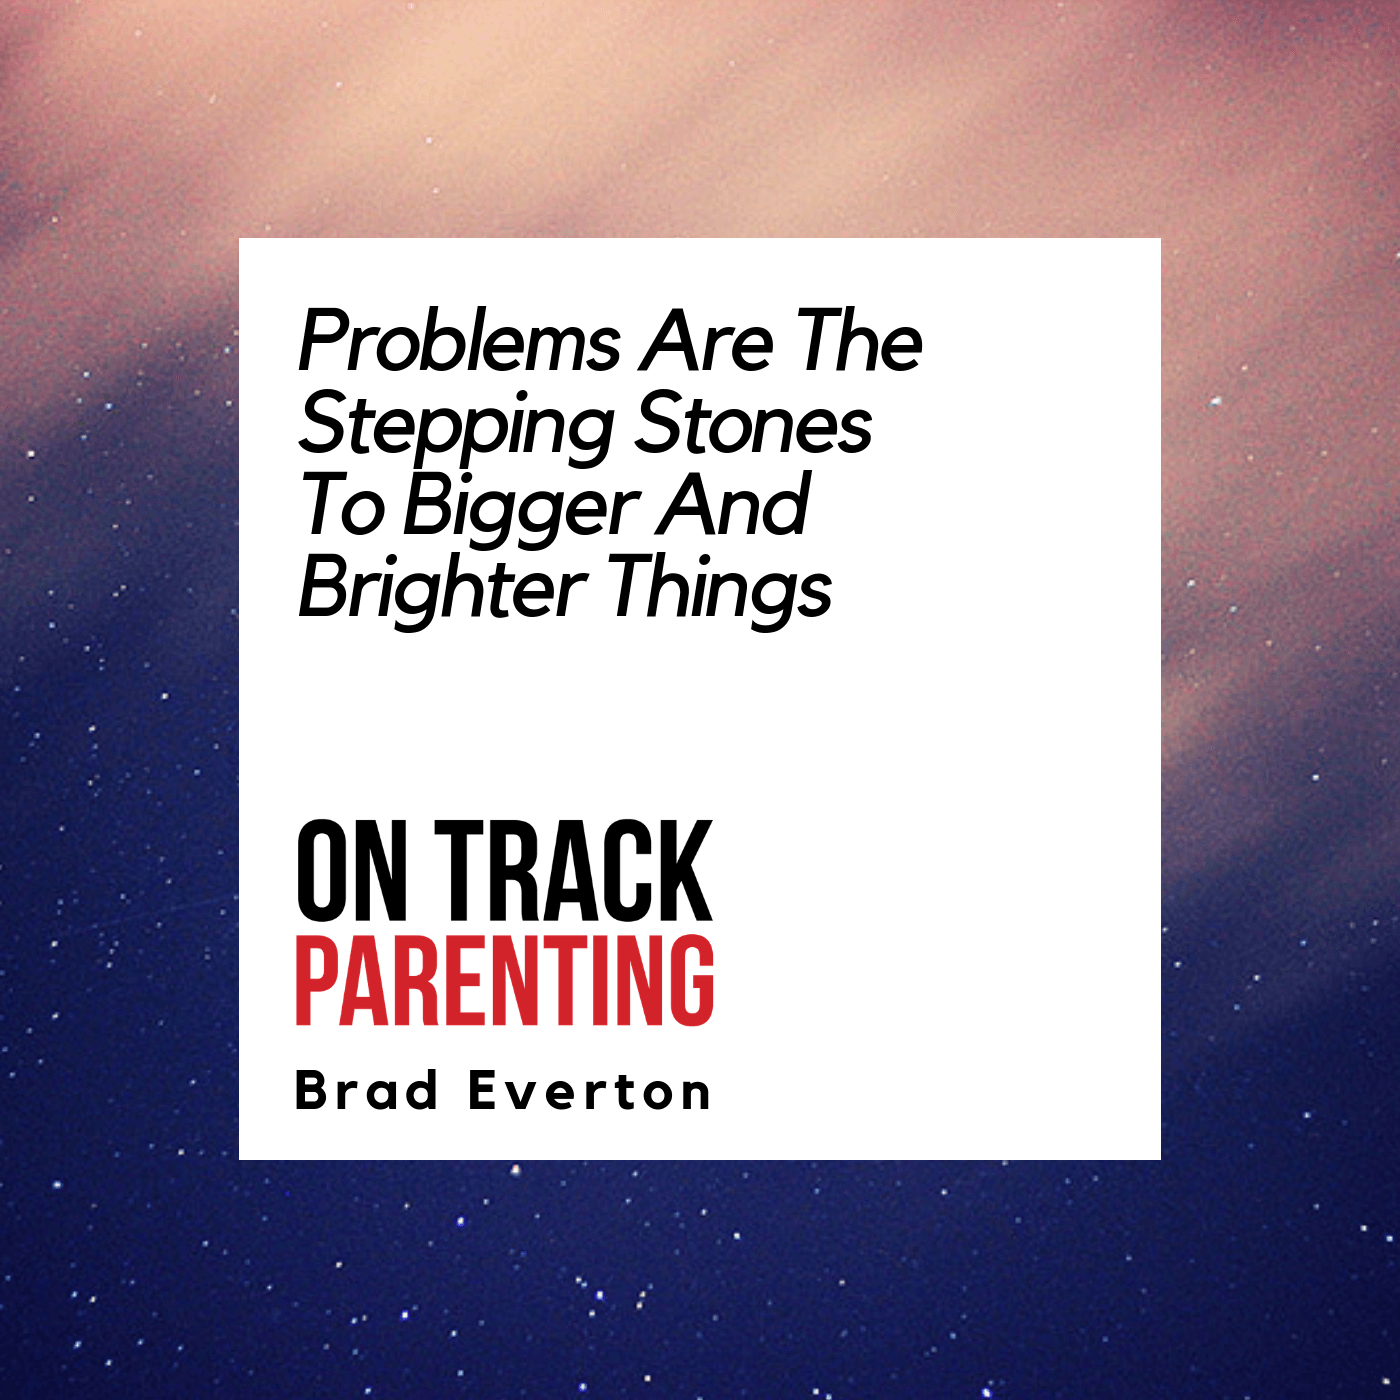 Problems are the Stepping Stones to Bigger and Brighter Things